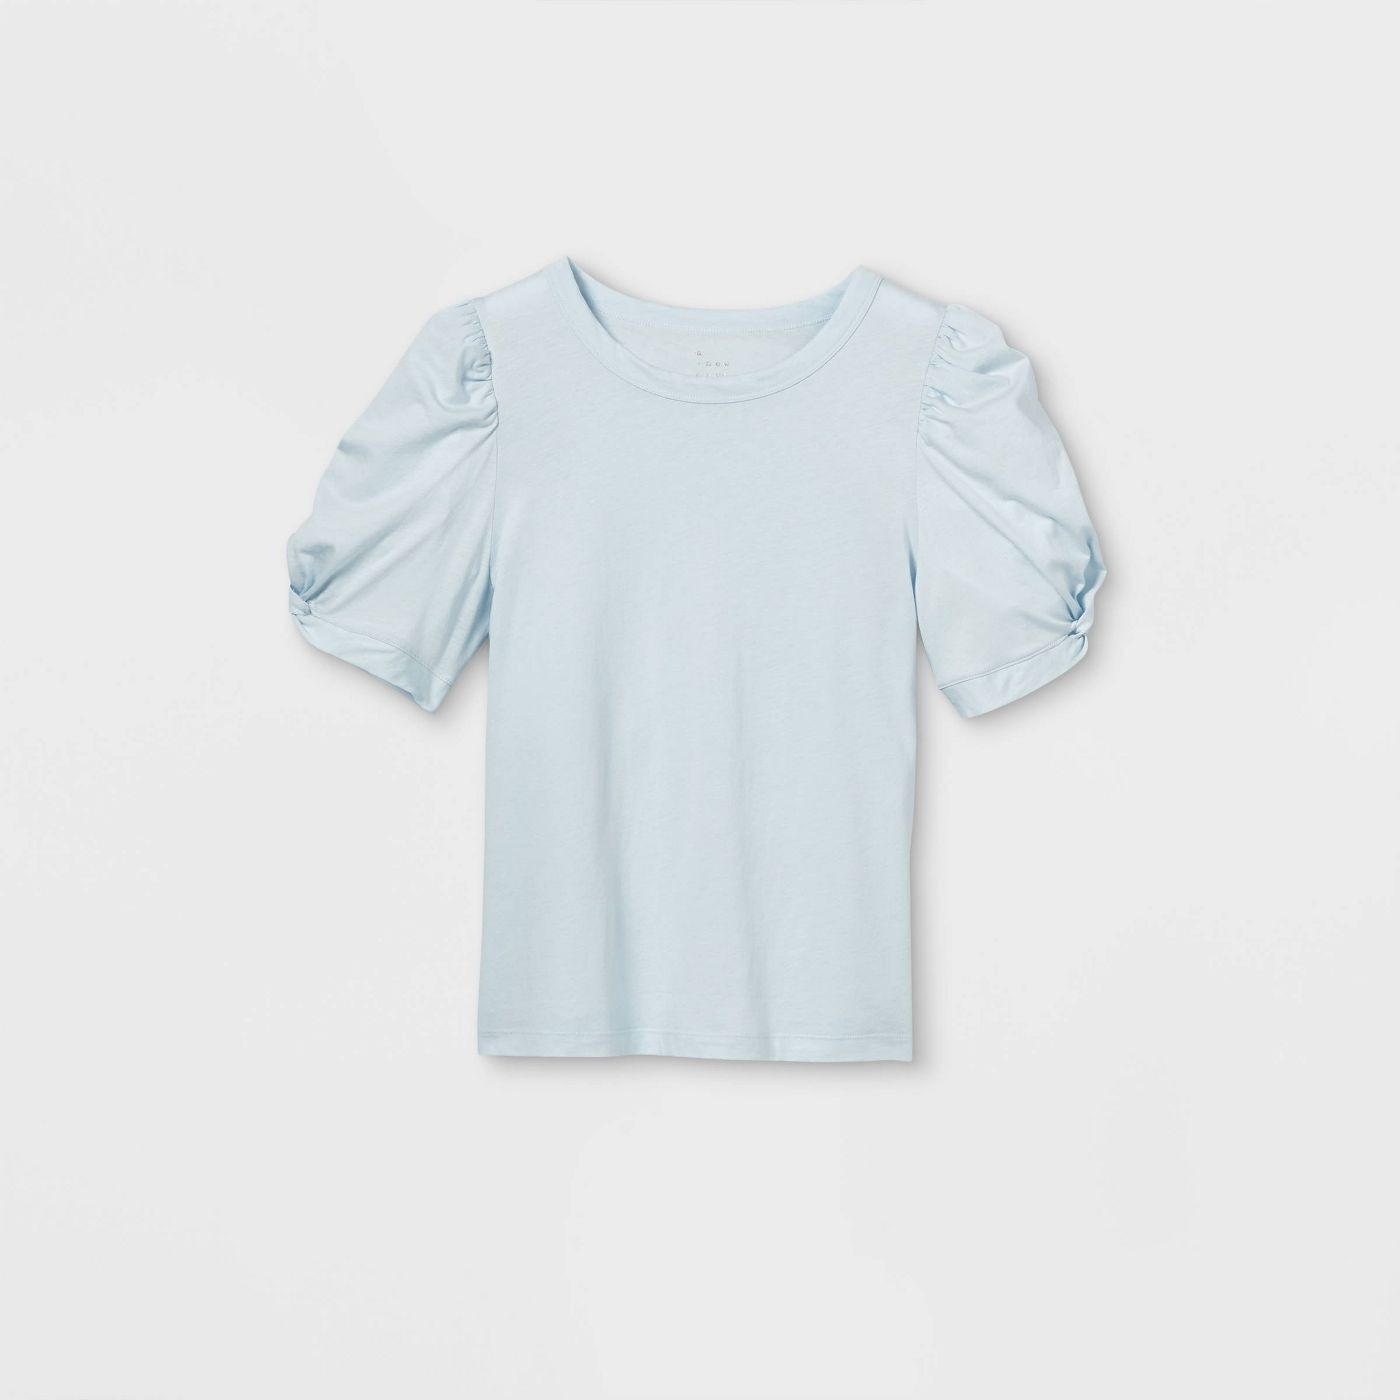 Women's Puff Short Sleeve Round Neck T-Shirt - A New Day™ - image 1 of 7